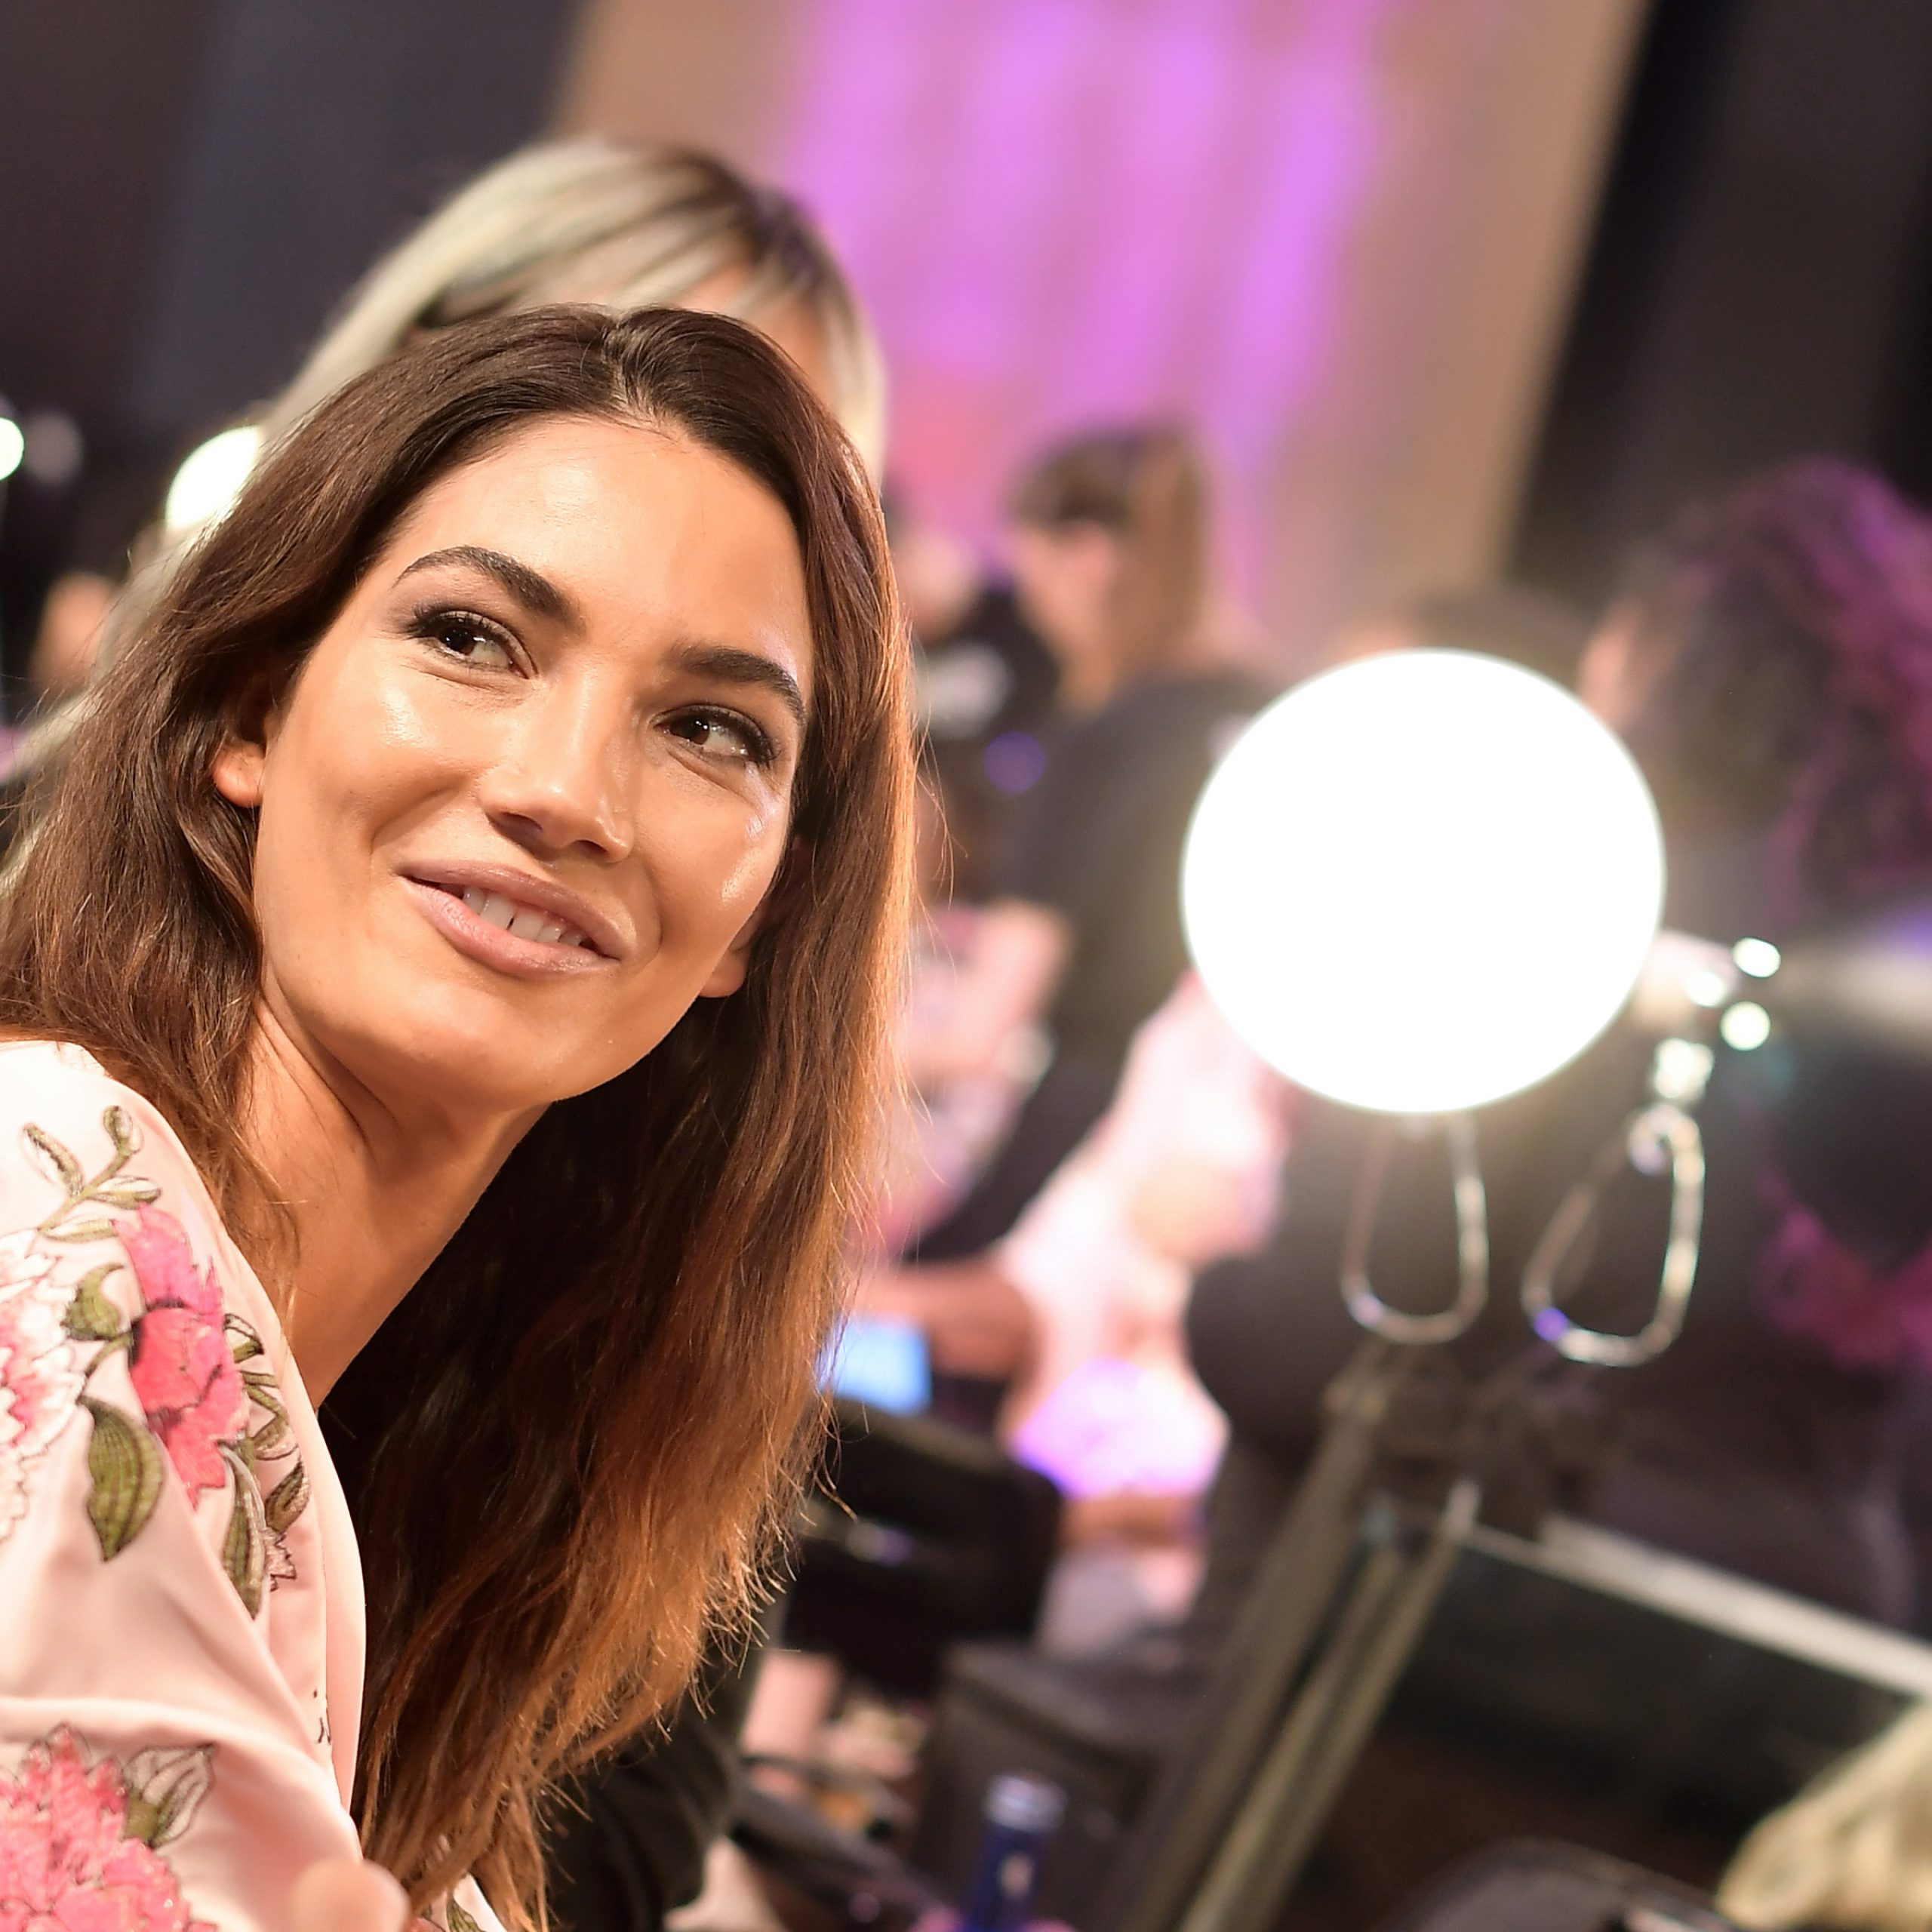 Trendy Shaggy Chestnut Medium Length Hairstyles In Lily Aldridge's Platinum Blonde Bob Is The Most Dramatic (View 18 of 20)